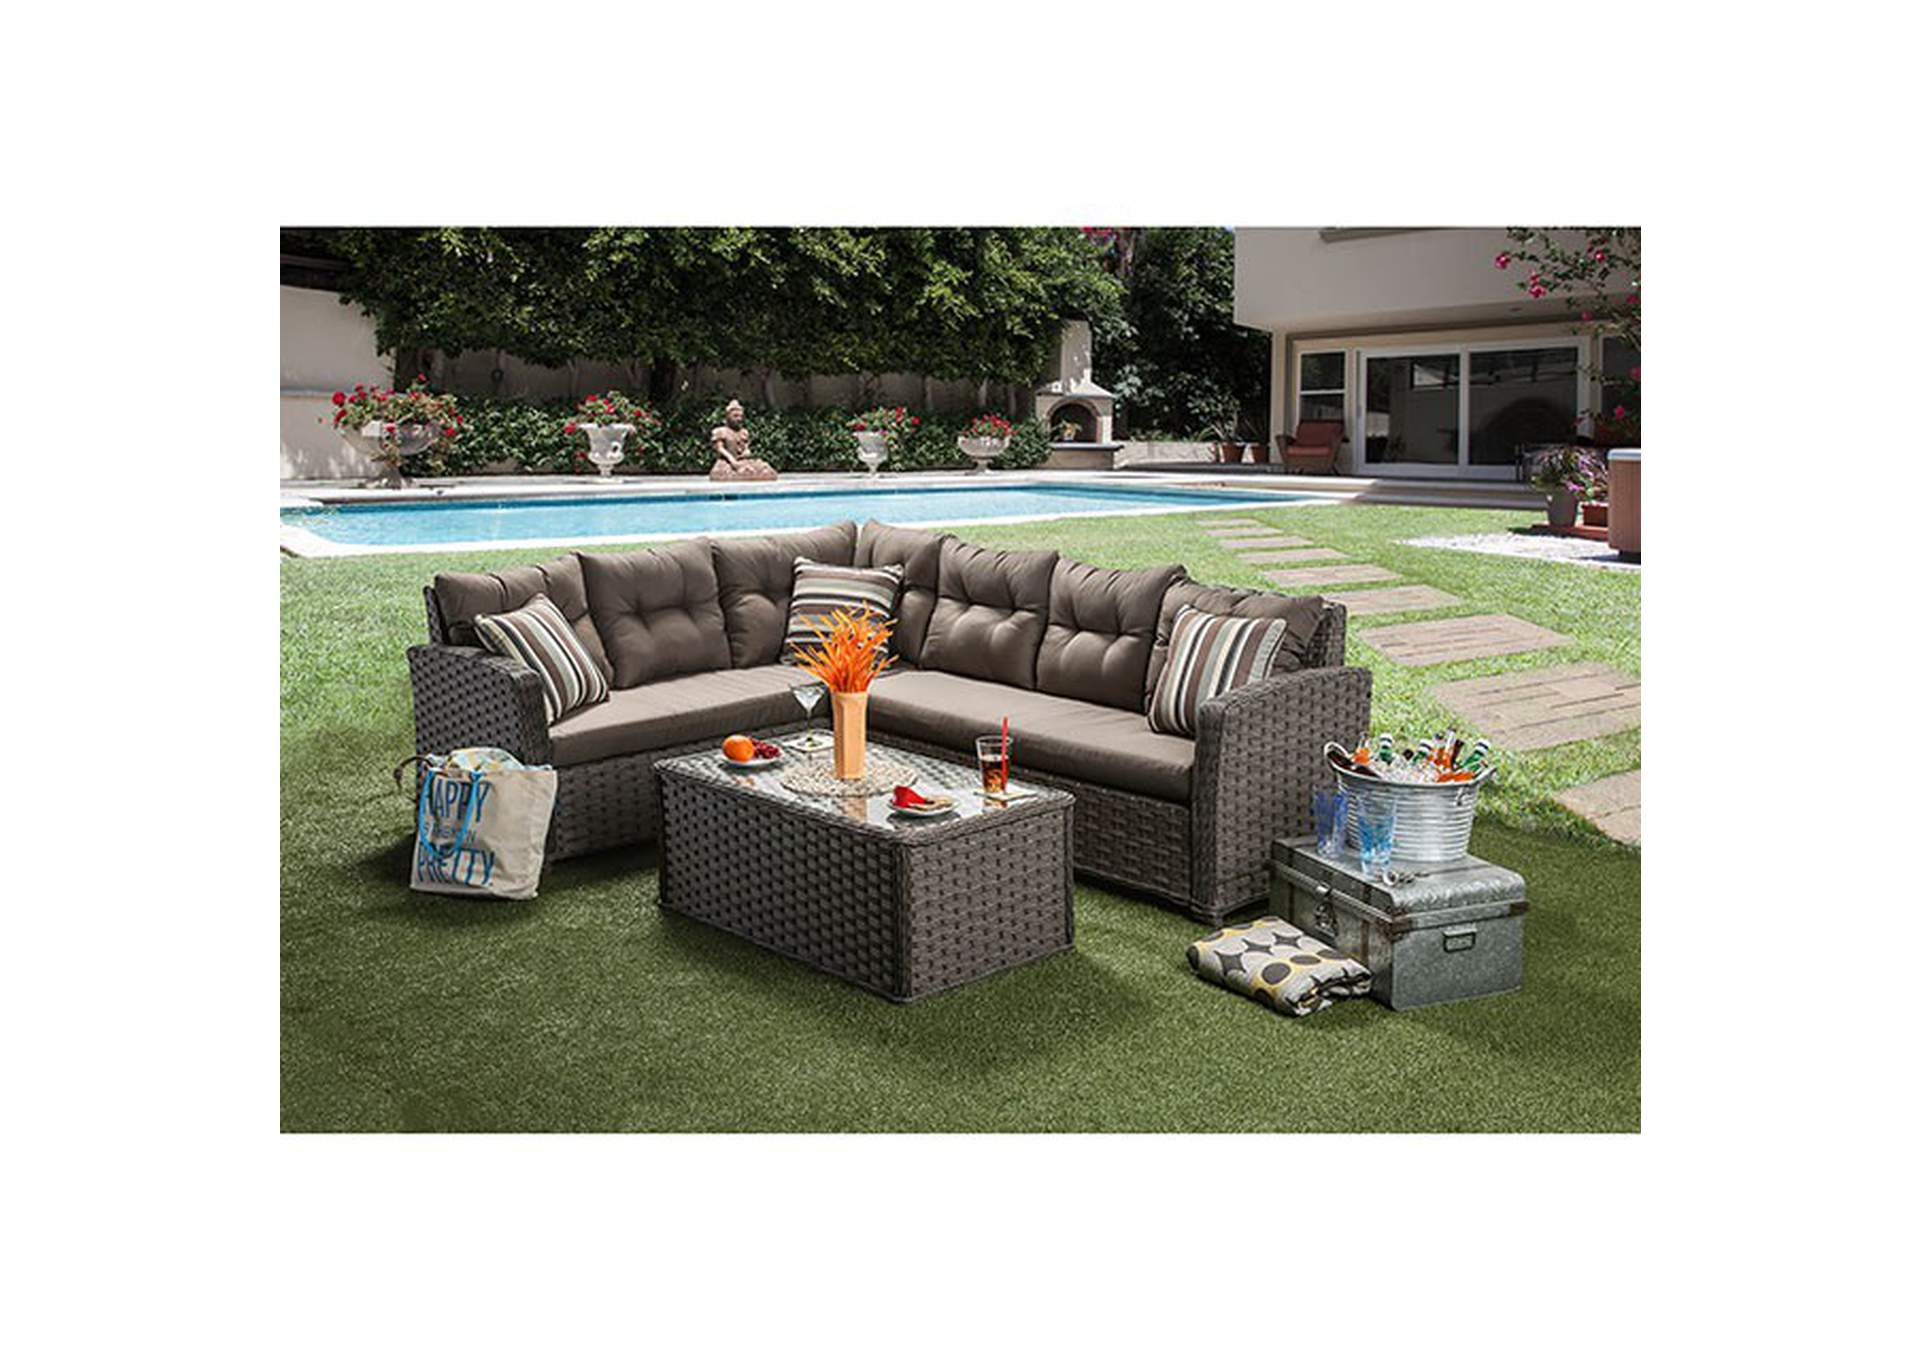 Moura Patio Sectional,Furniture of America